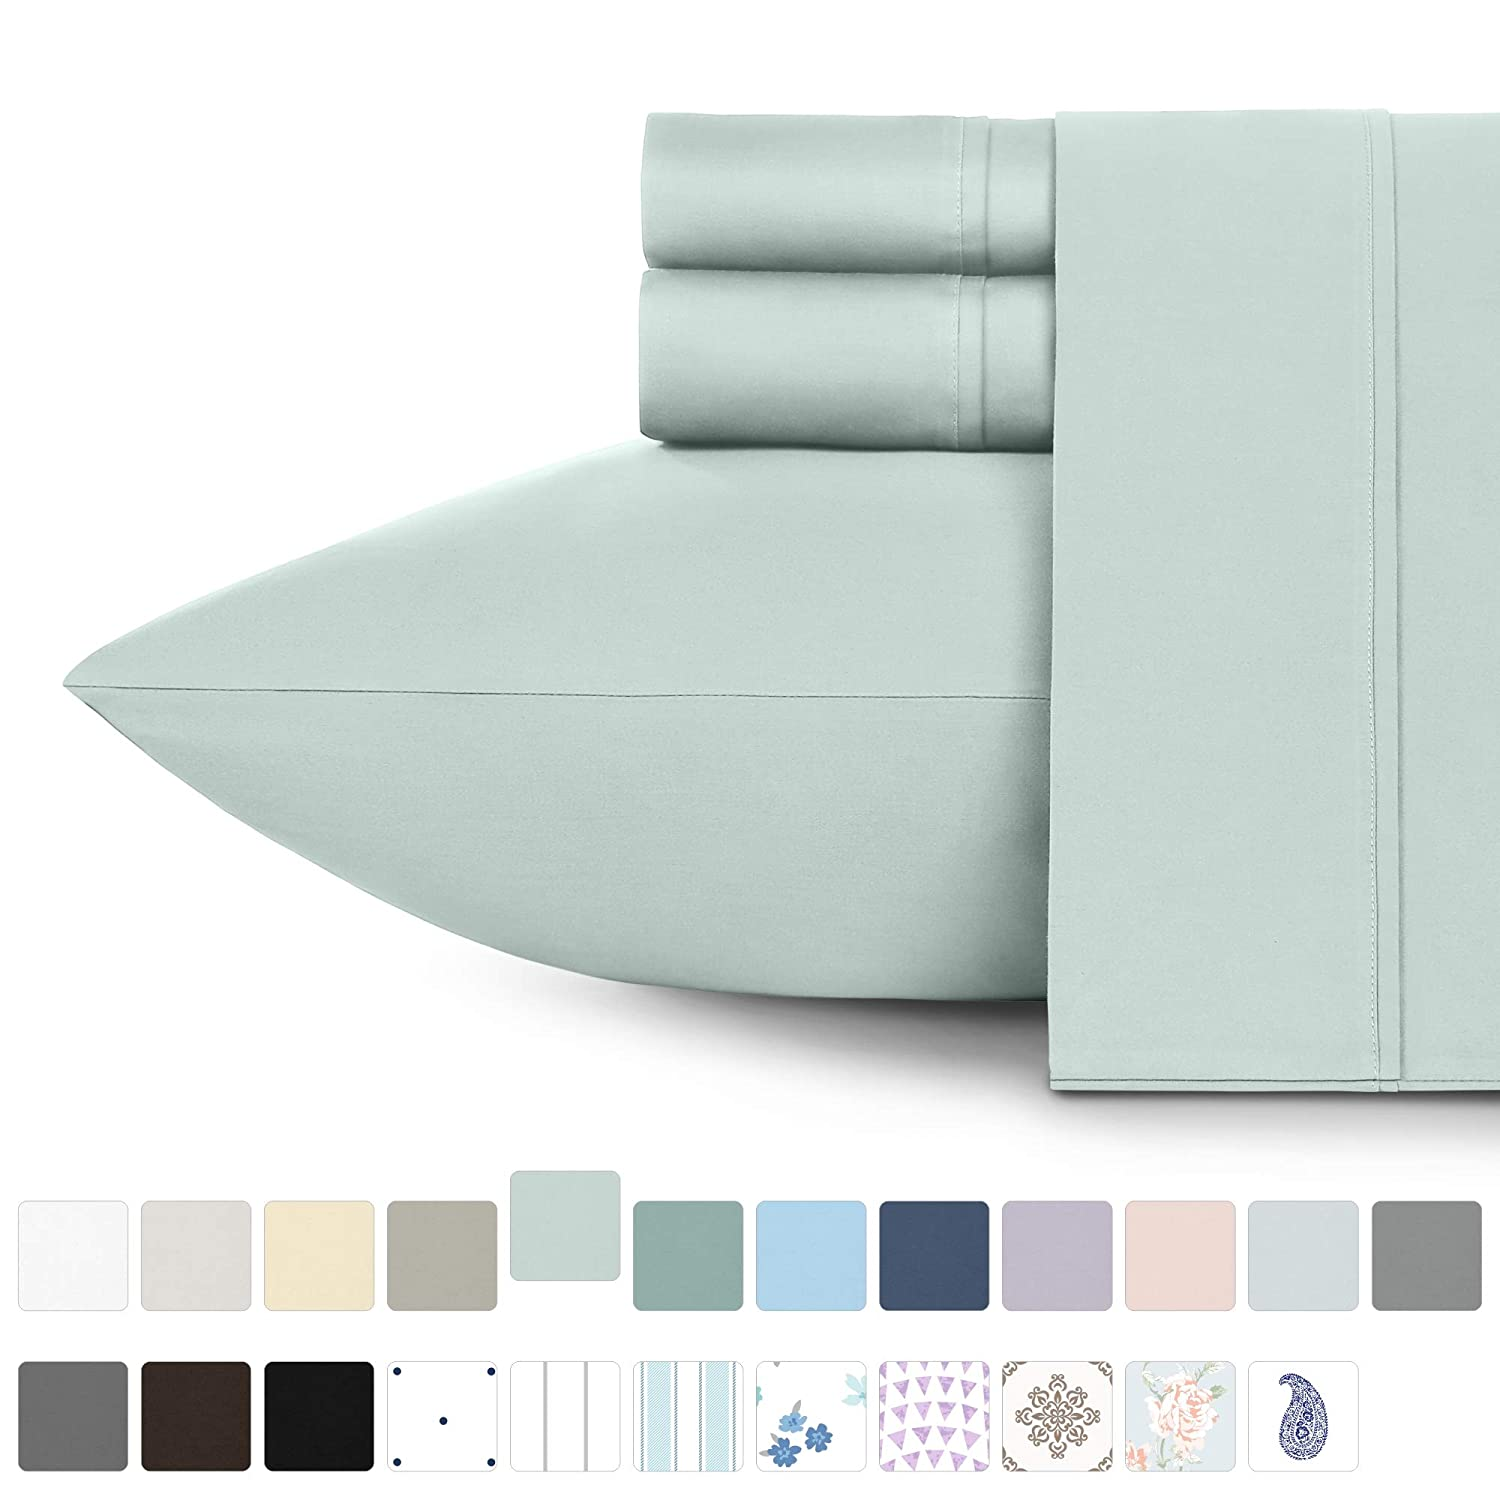 California Design Den 400 Thread Count 100% Cotton Sheet Set, Mod Spa Full Sheets 4 Piece Set, Long-Staple Combed Pure Natural Cotton Bedsheets, Soft & Silky Sateen Weave